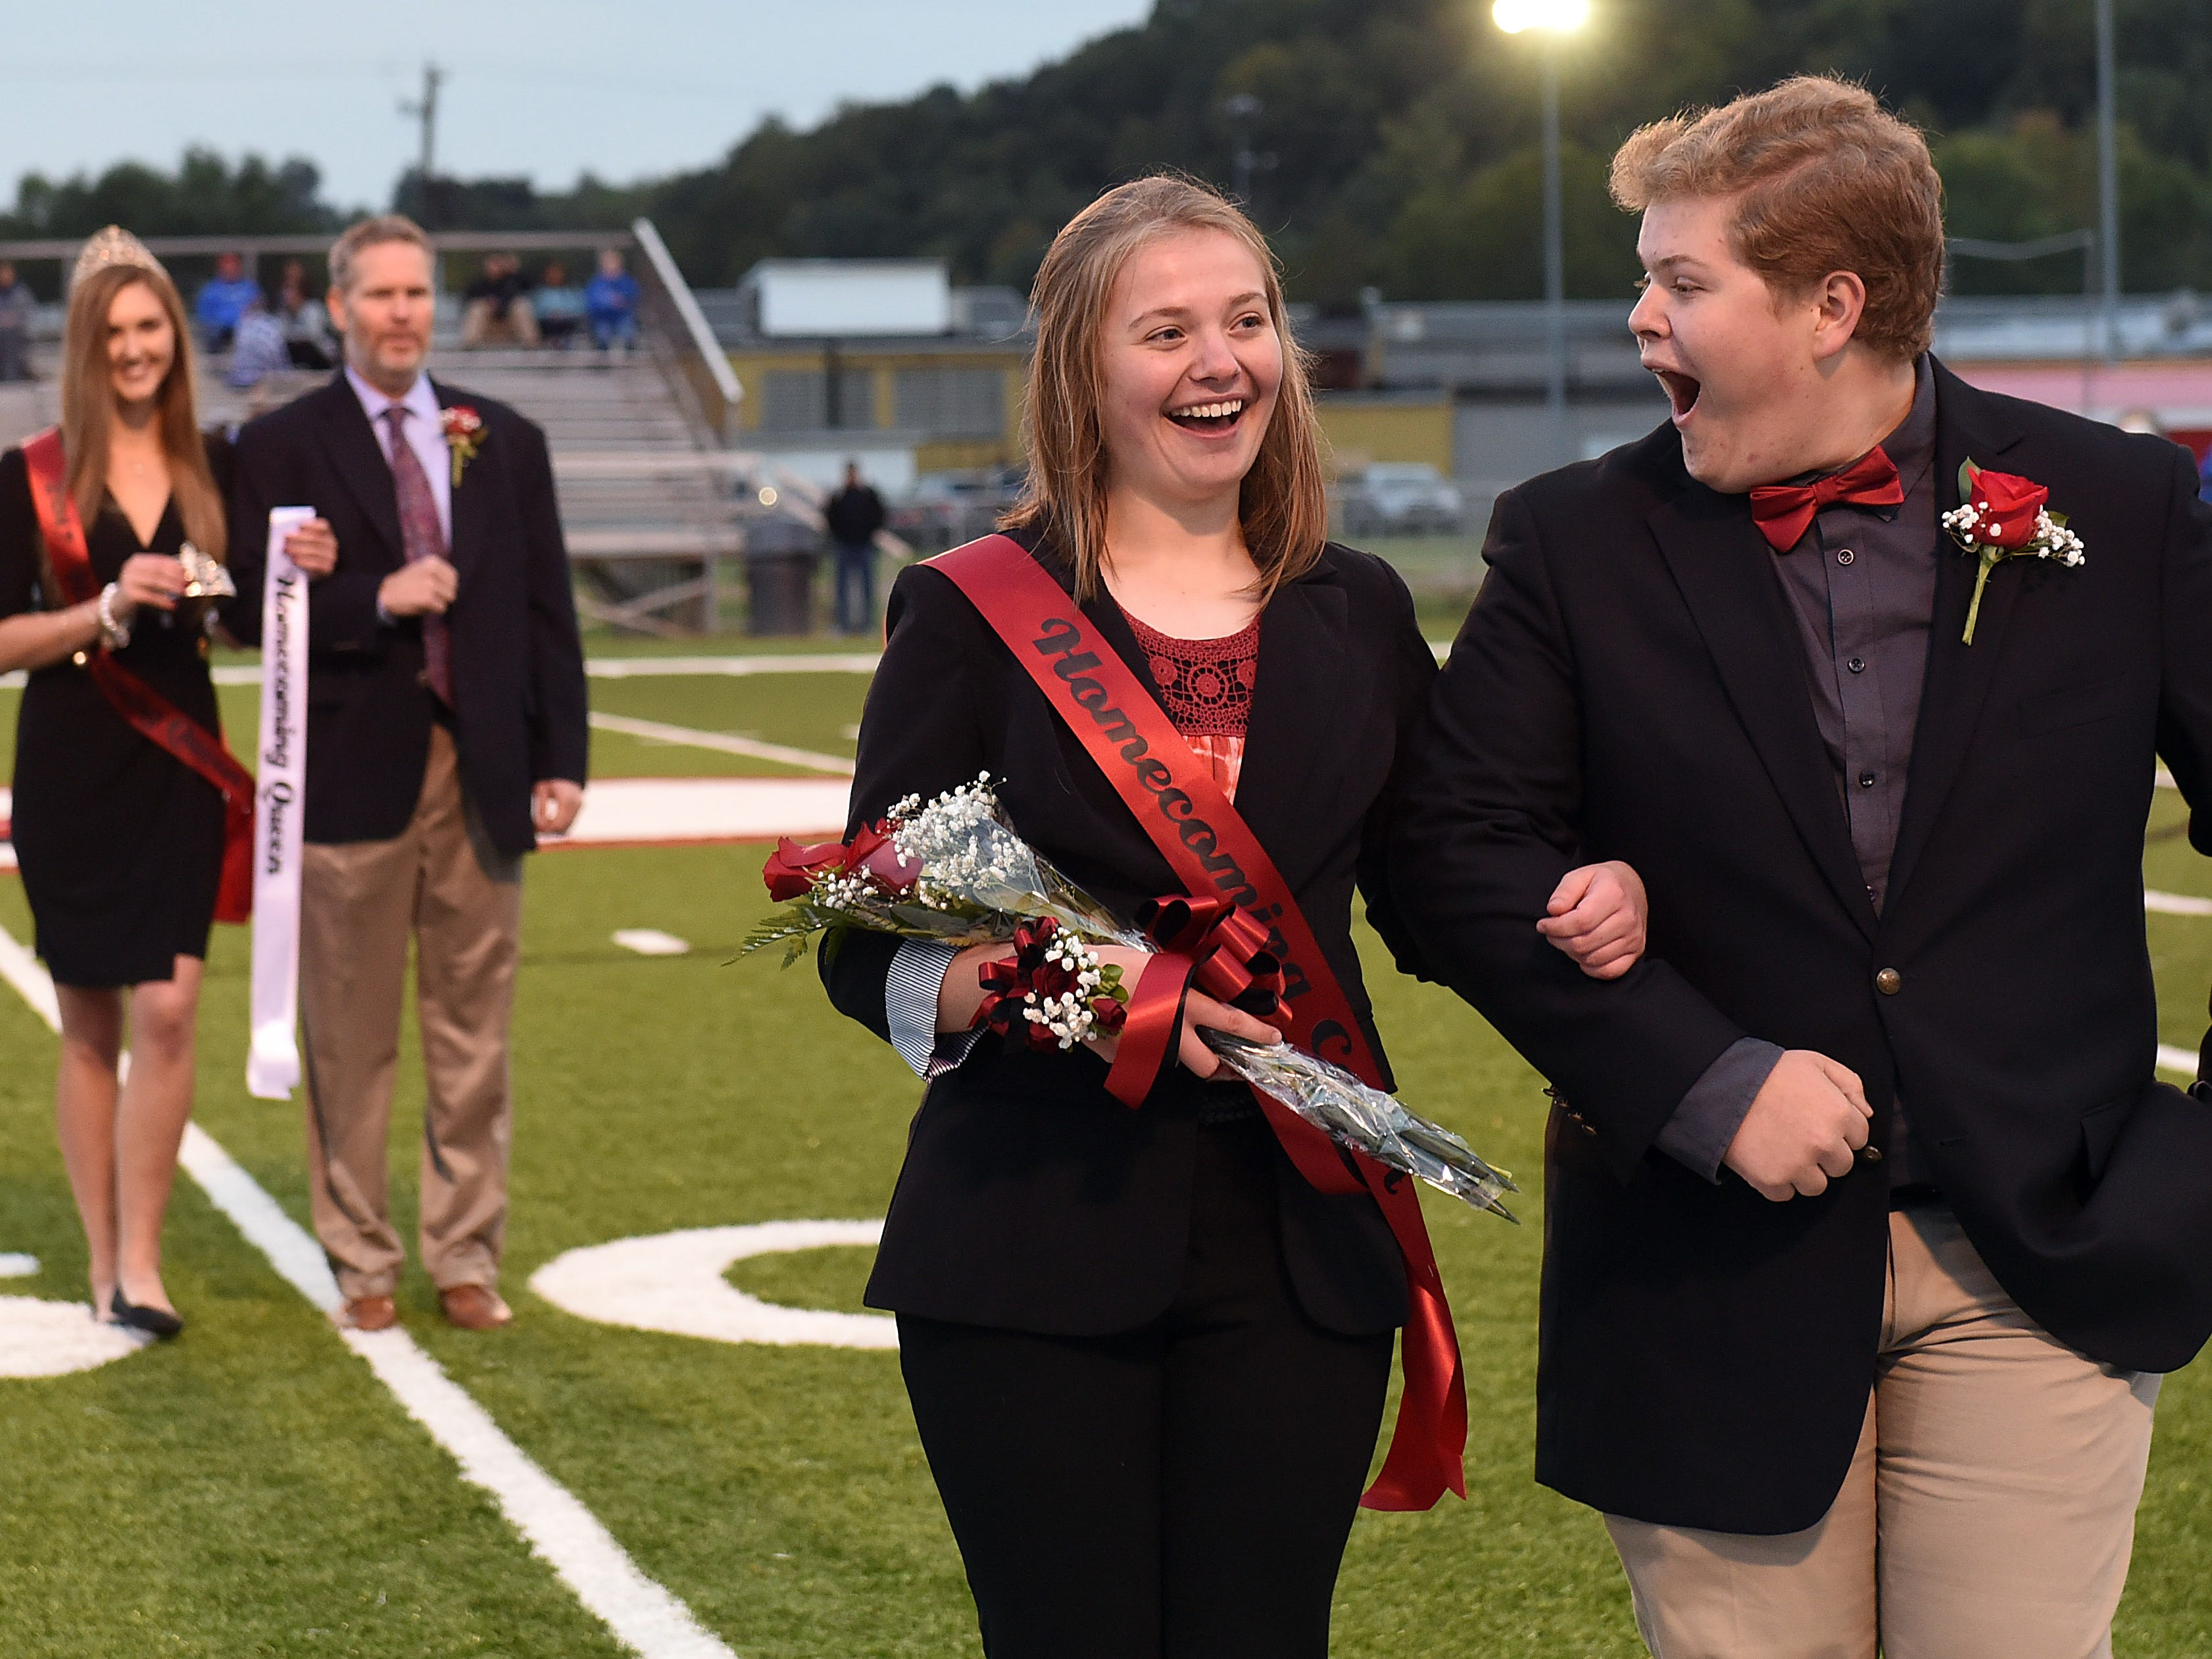 Coshocton seniors Jenna Stonebraker and Graham Beaumont react as Stonebraker is announced as the 2018 homecoming queen on the field before the start of Friday night's game against Cambridge.